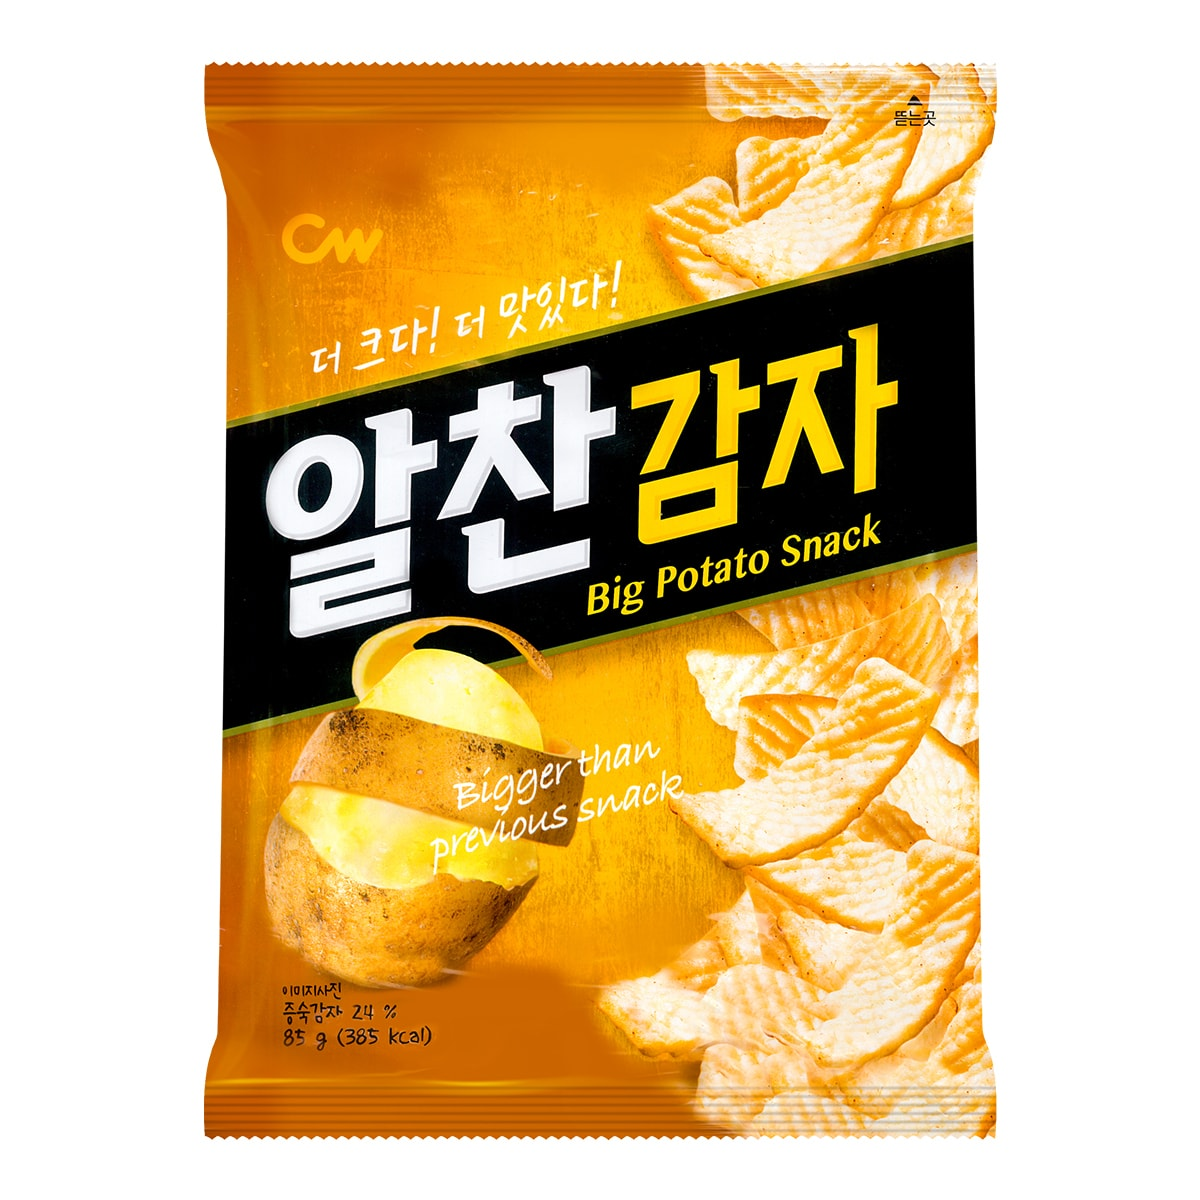 CW Big Potato Snack 85g